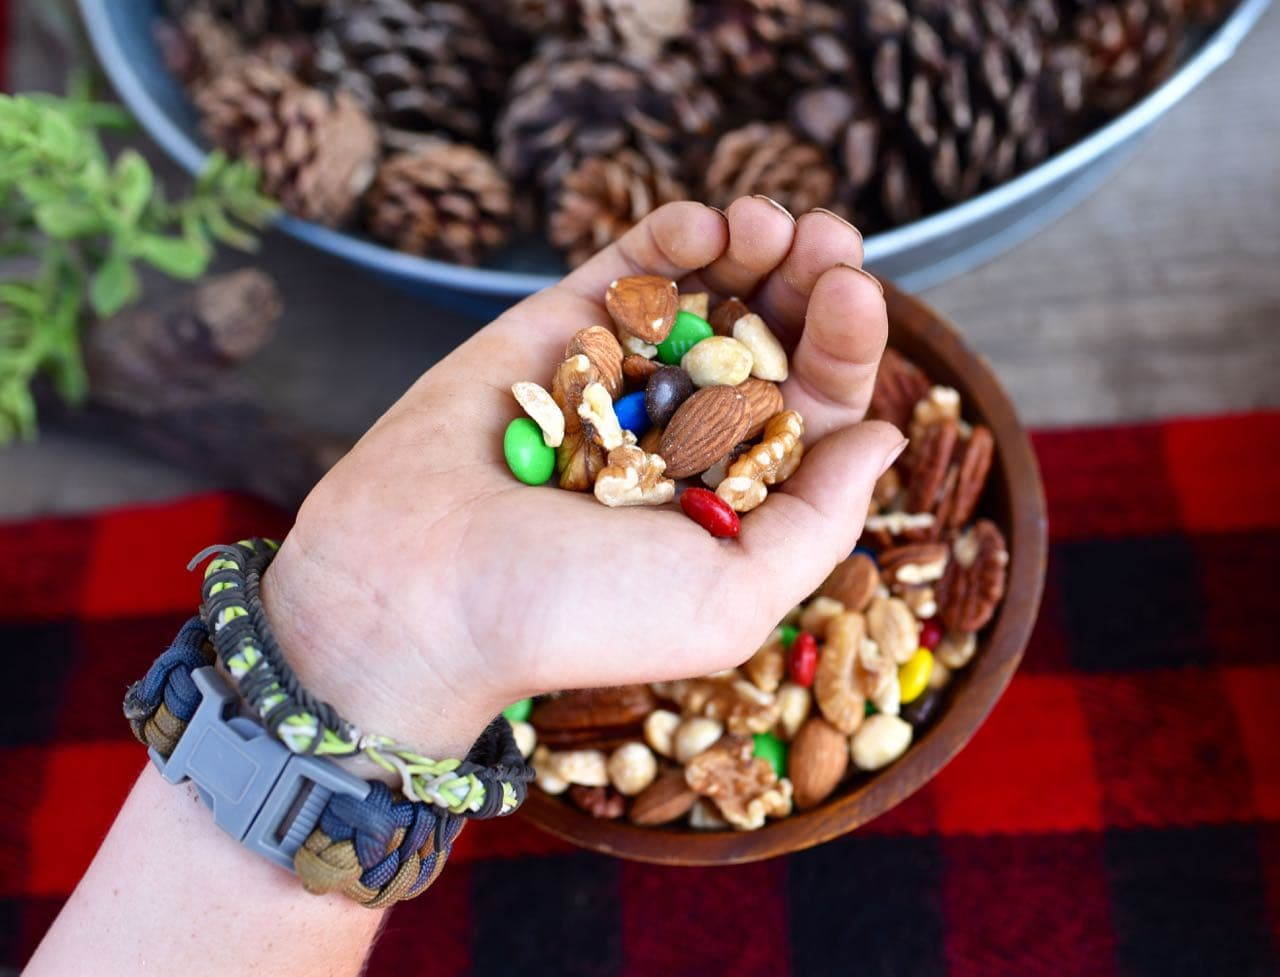 Eating trail mix at the backyard camping party